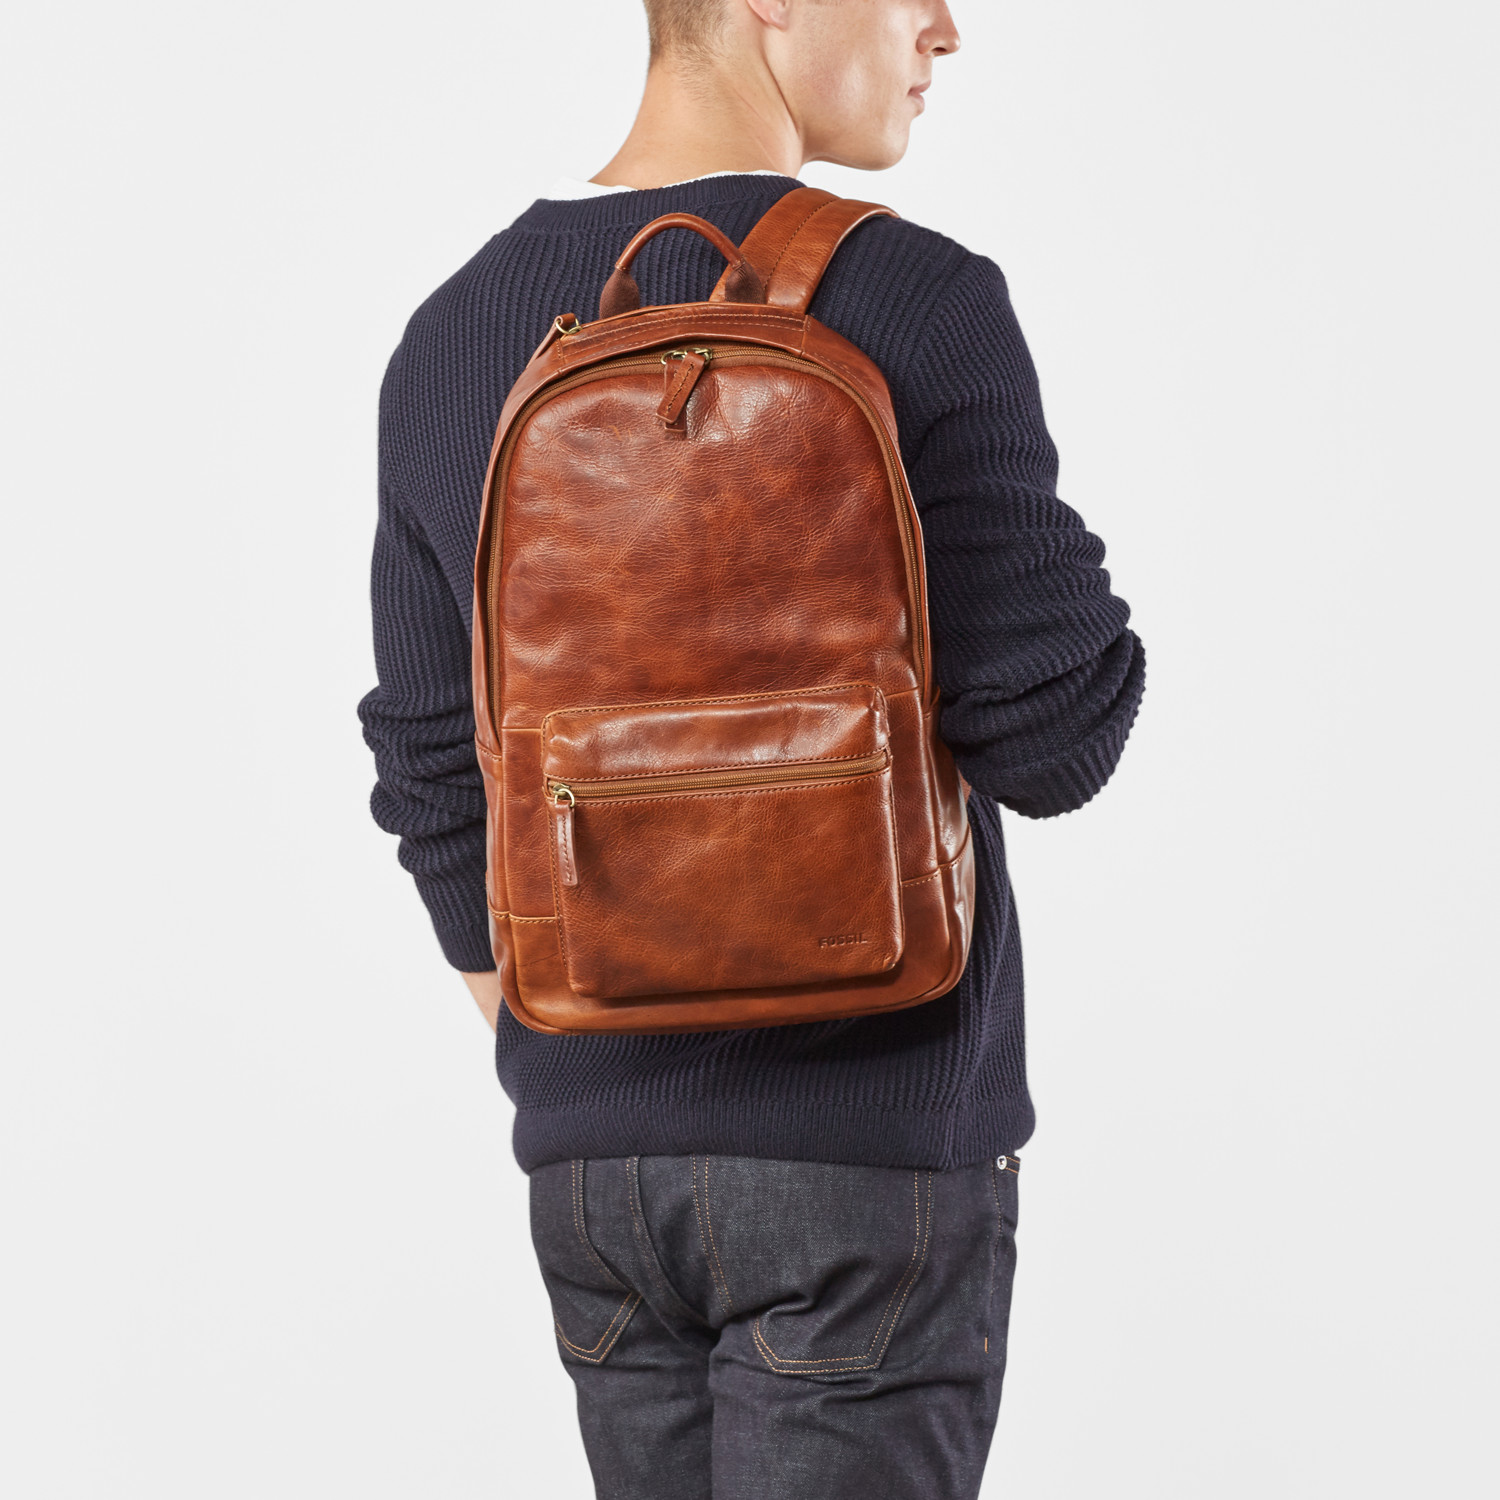 1f0f2033c2 Estate Casual Leather Backpack - Fossil